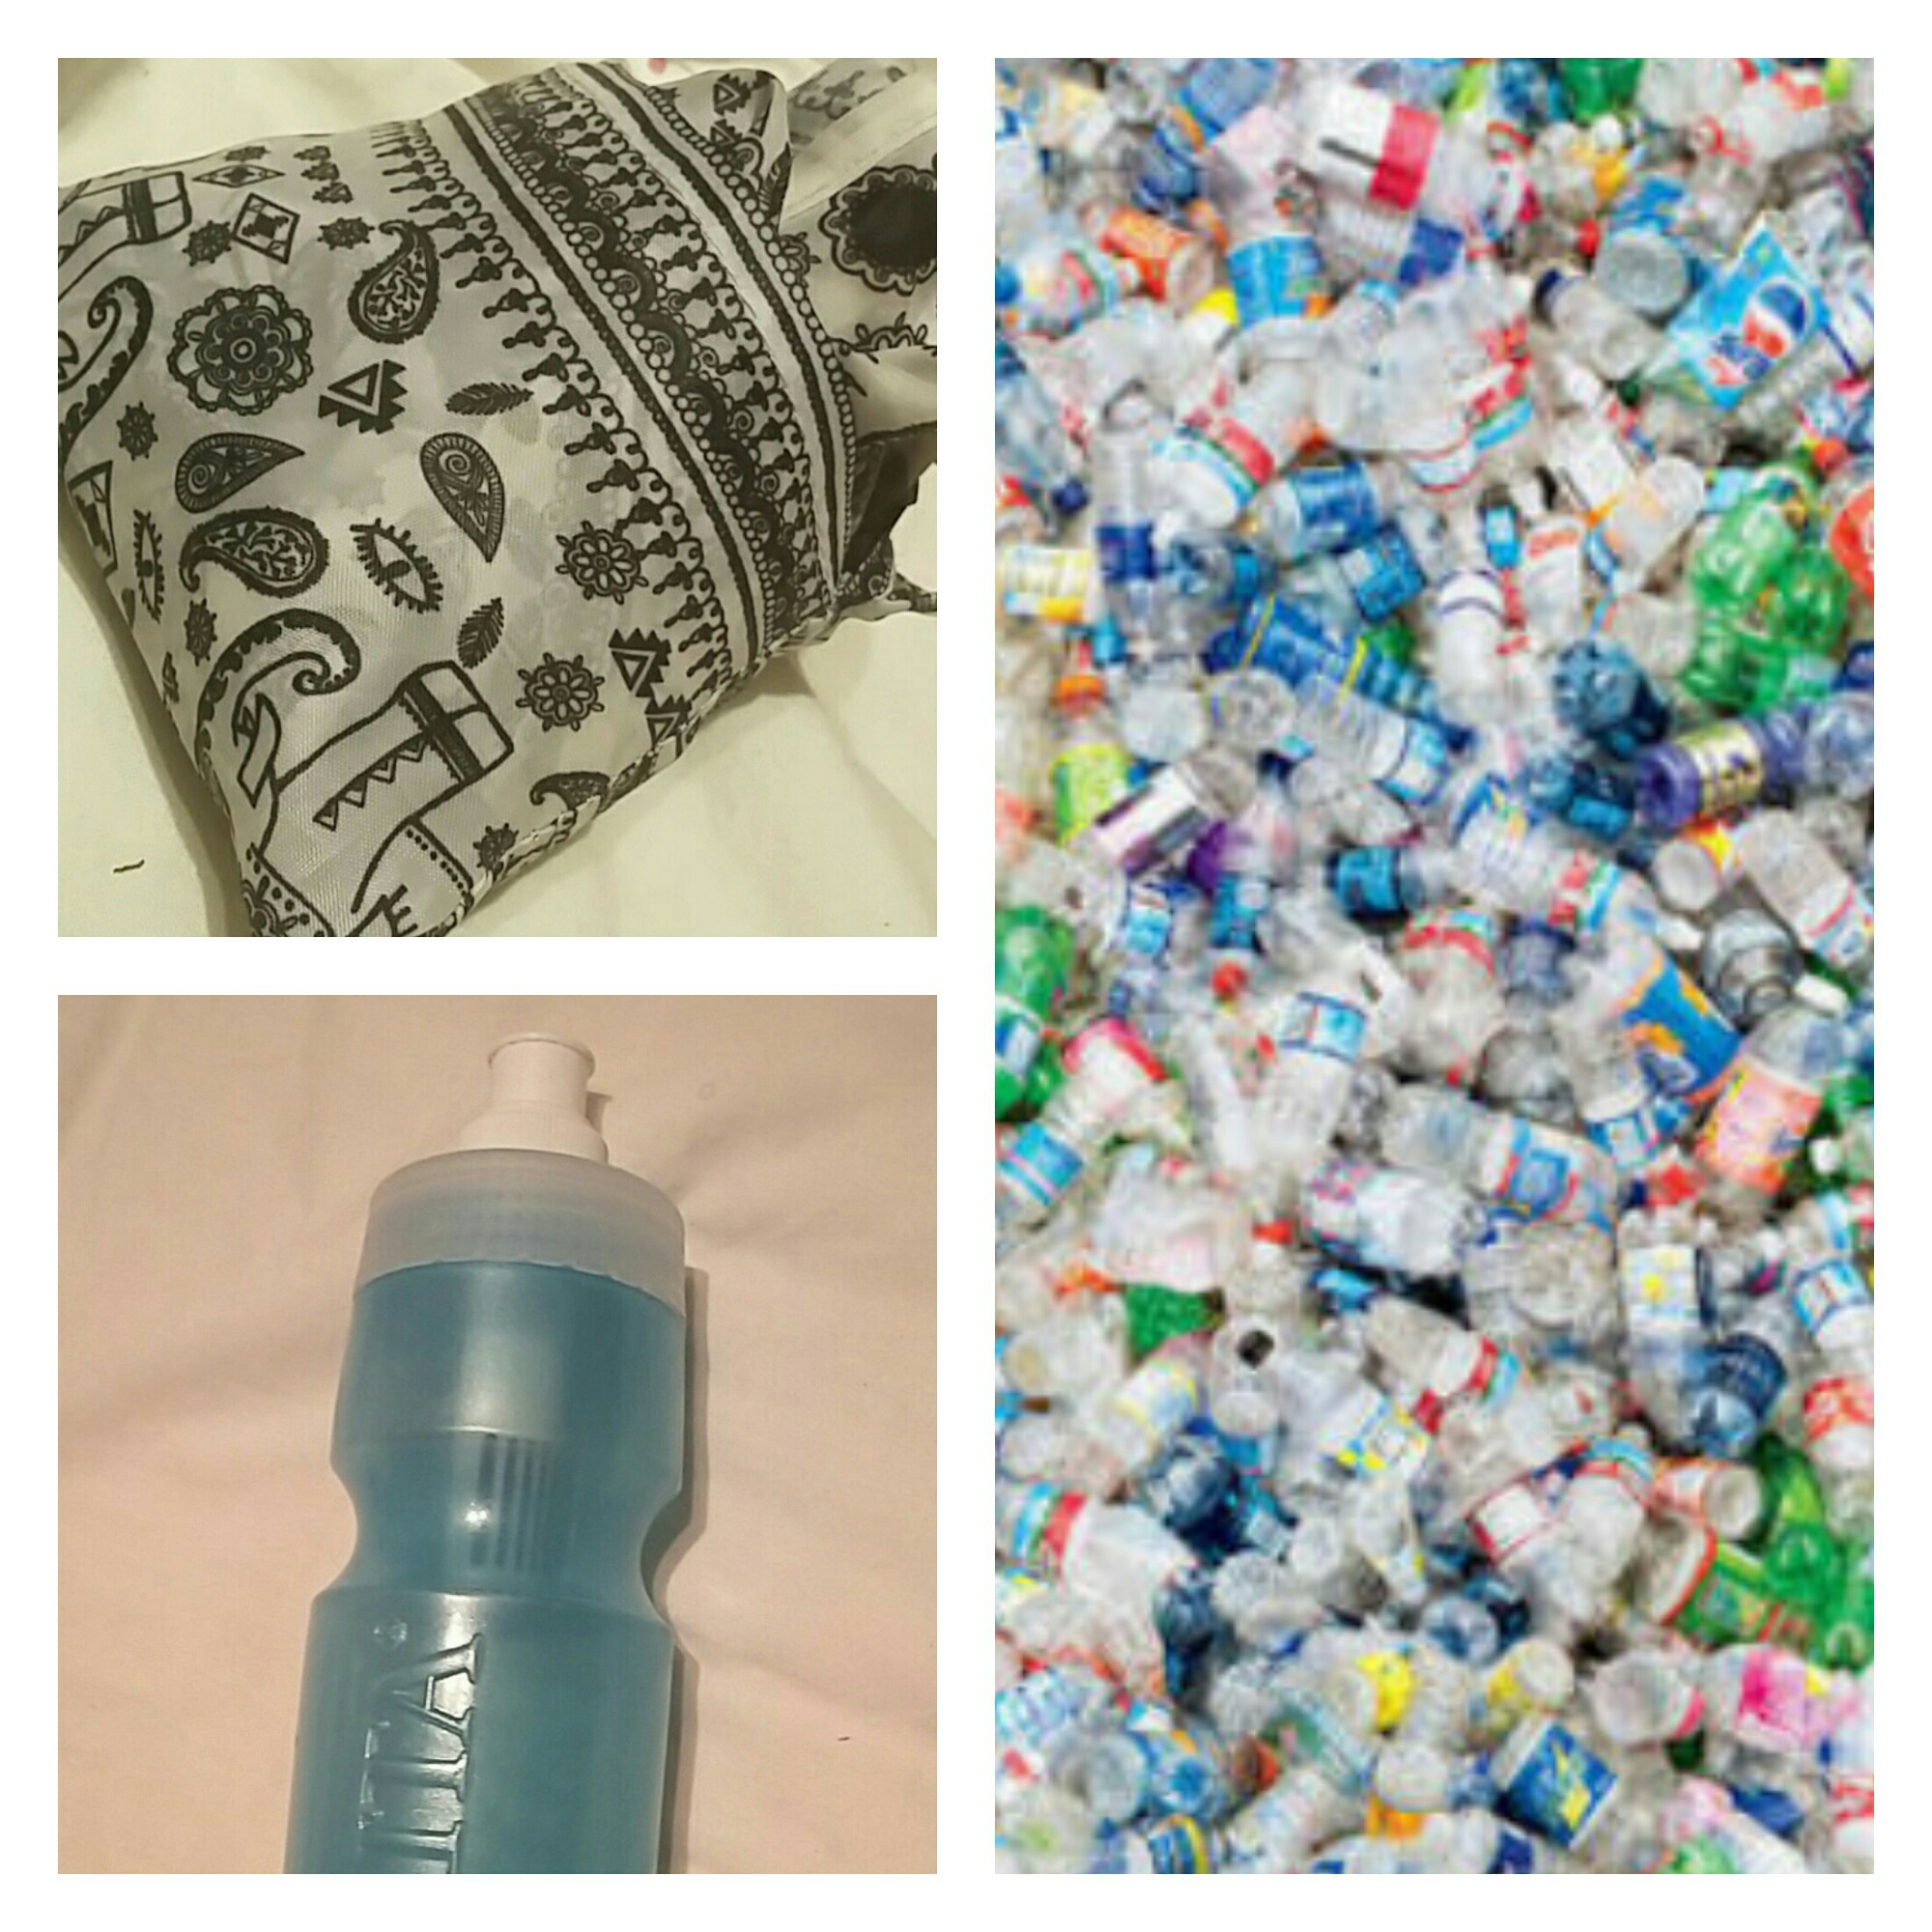 5 small and easy ways to reduce your plastic waste